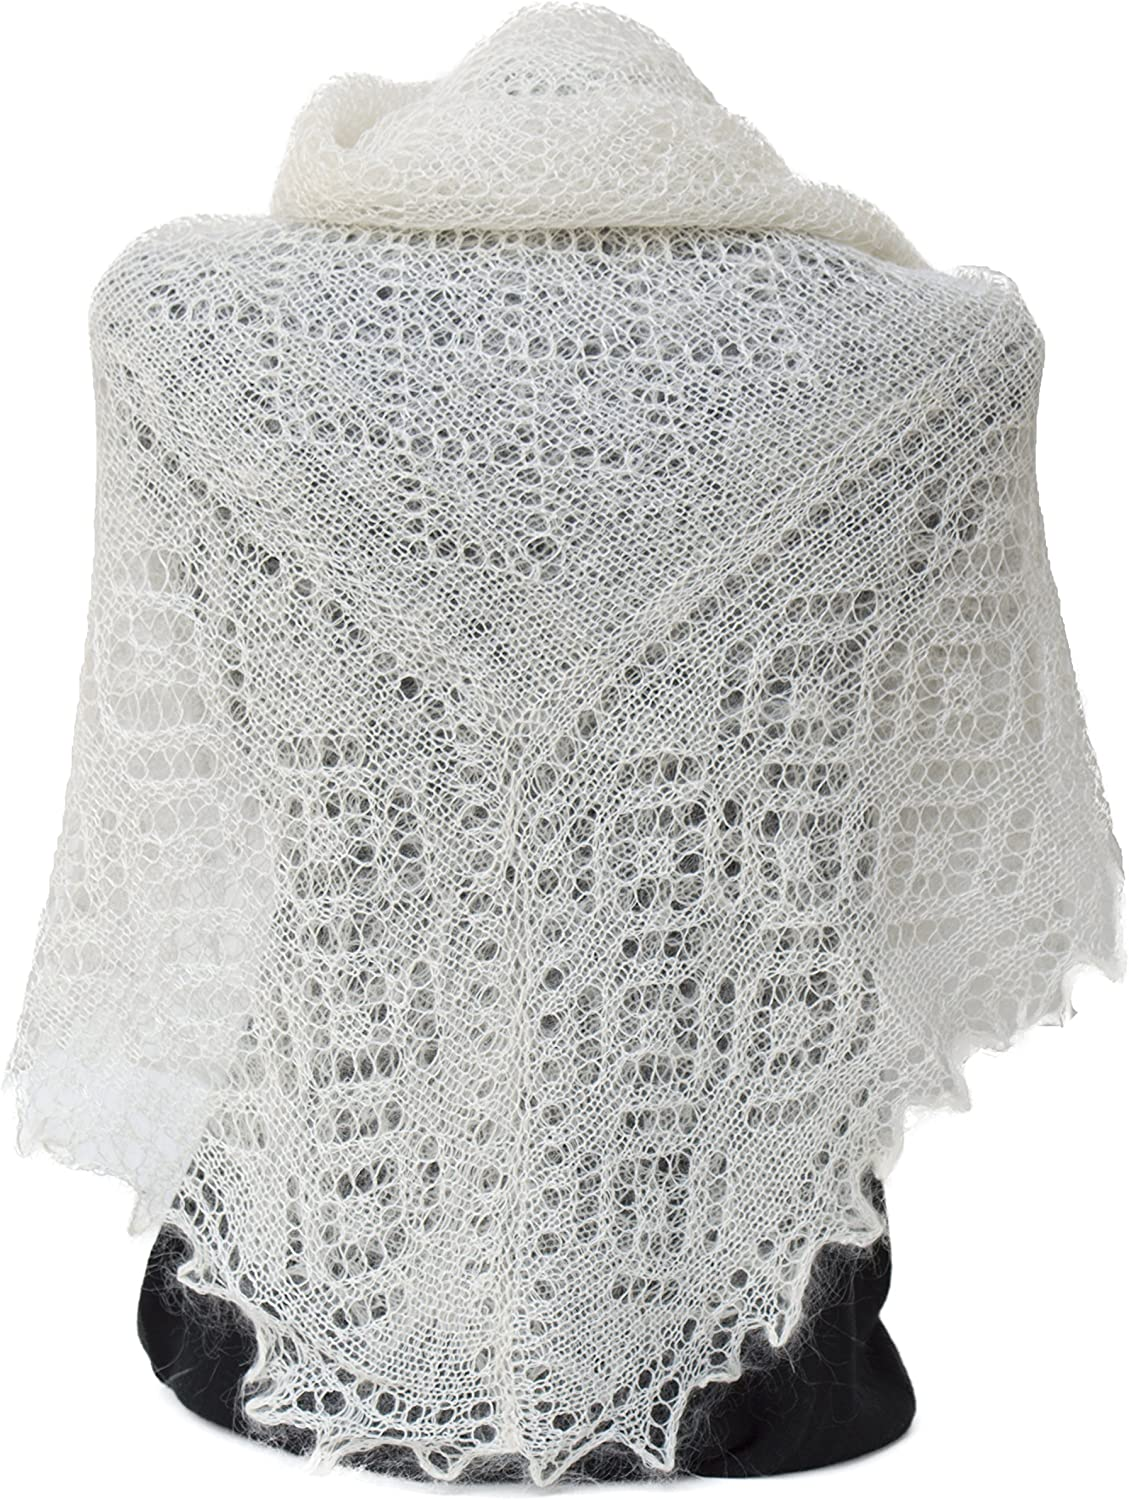 Women/'s Shawl  Knit Hand Crocheted Throwover Beige Poncho